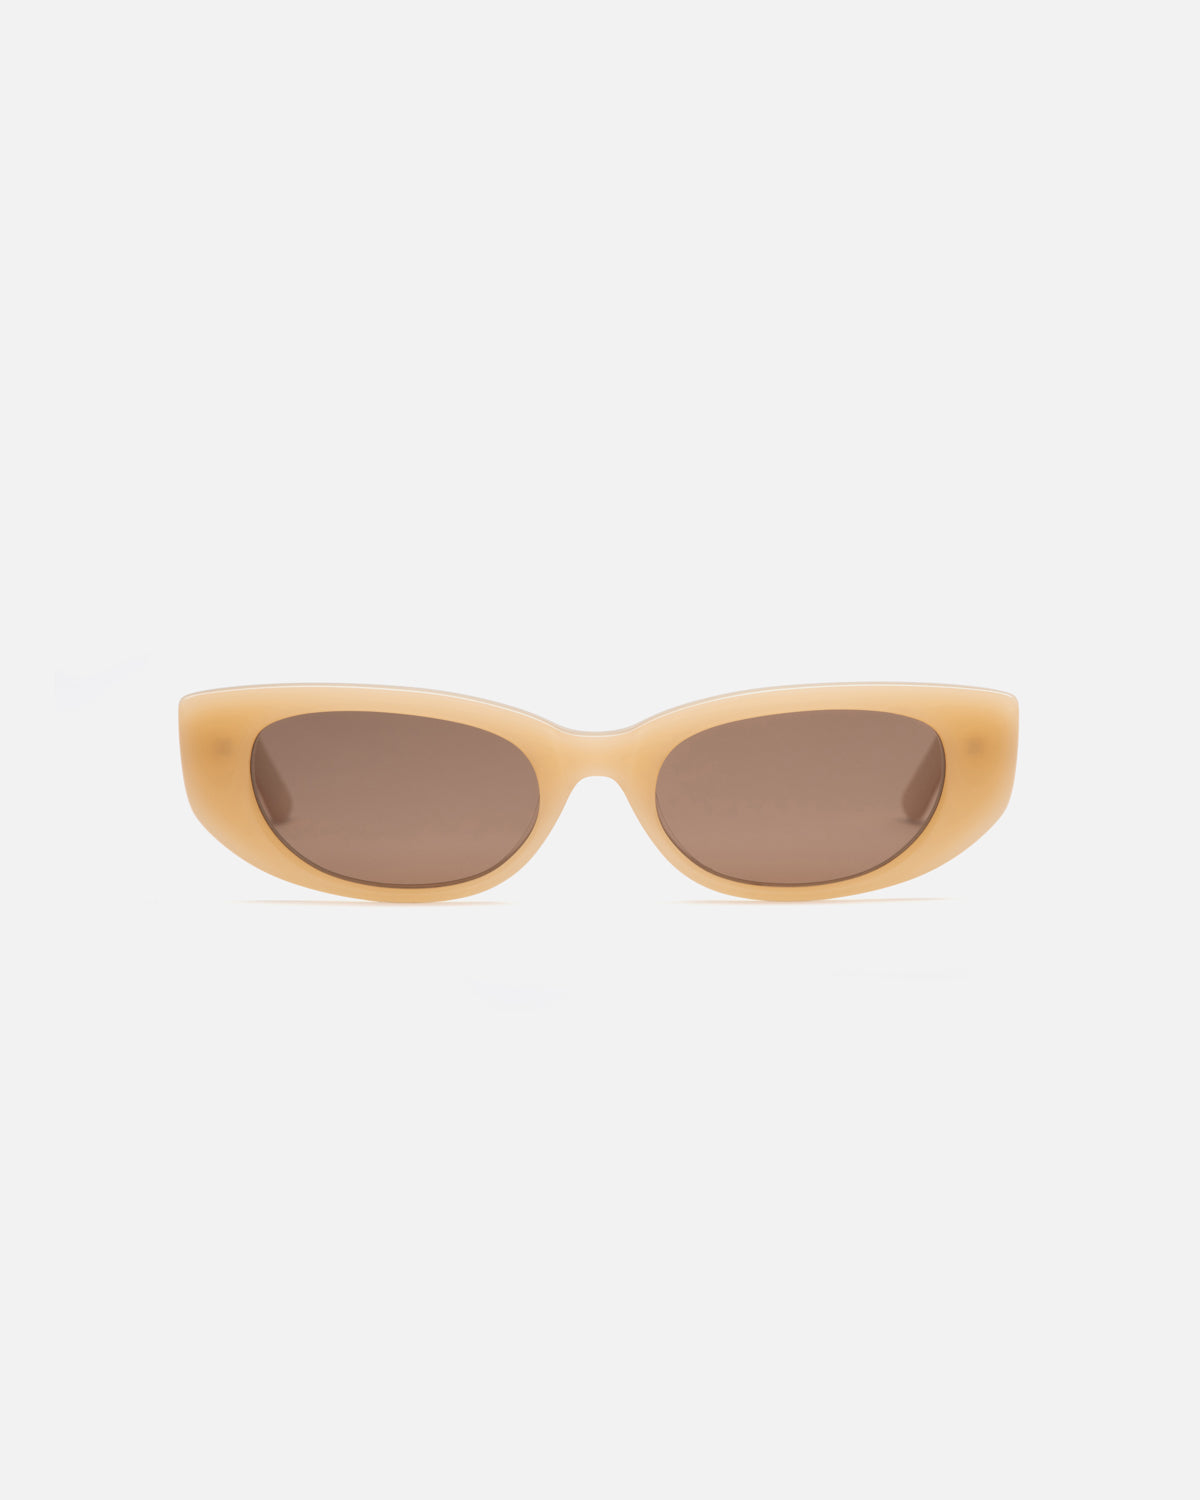 Lu Goldie Lotte semi cat eye Sunglasses in yellow acetate with brown lenses, front